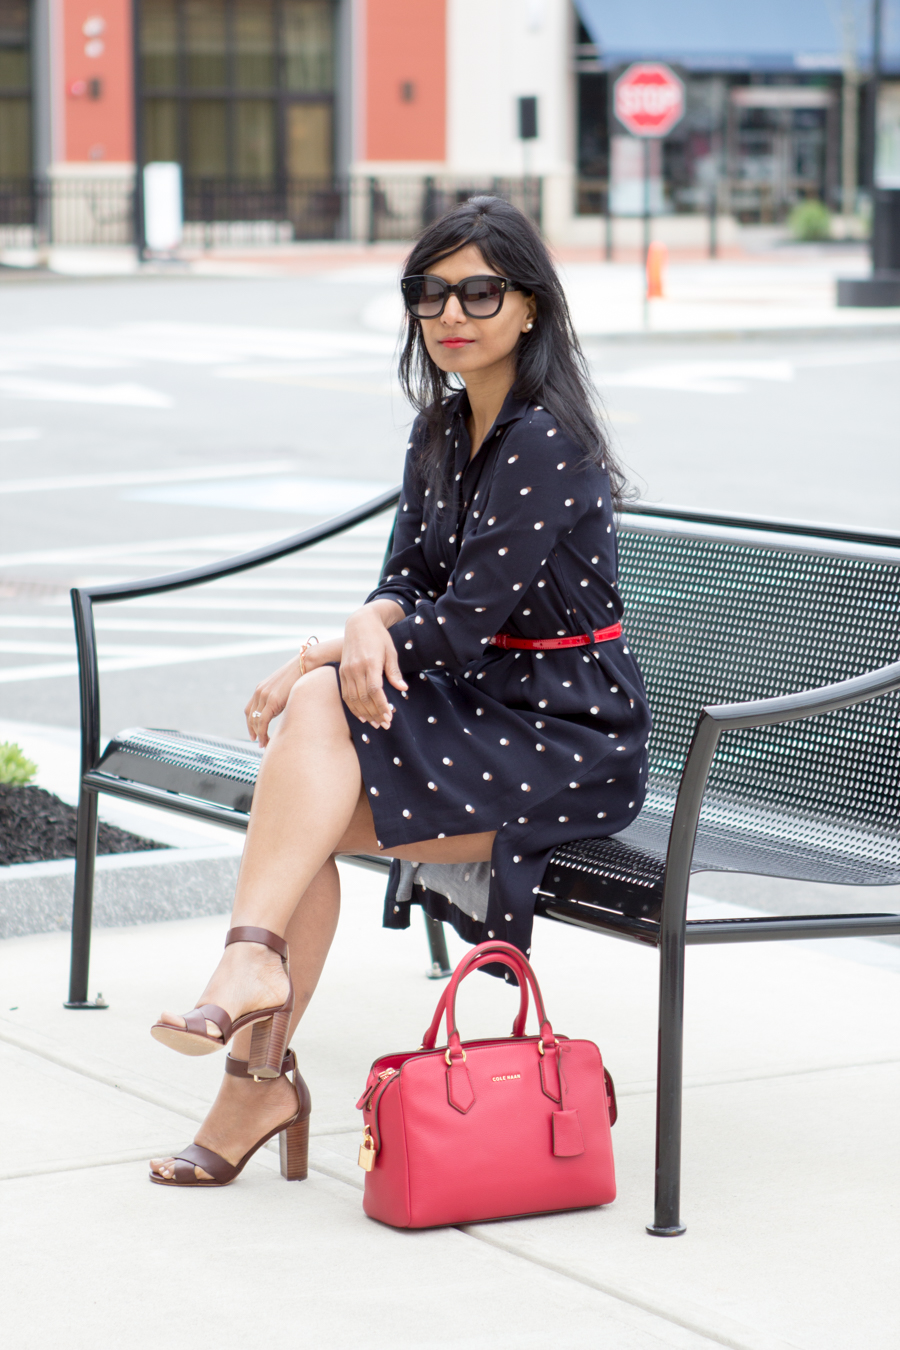 office style, work style, career woman, dress for success, corporate fashion, 9 to 5 style, office style, work wear, women's wear, petite fashion, ann taylor, block heels, brown sandals, satchel, red satchel, bright accents, work break, taking a break